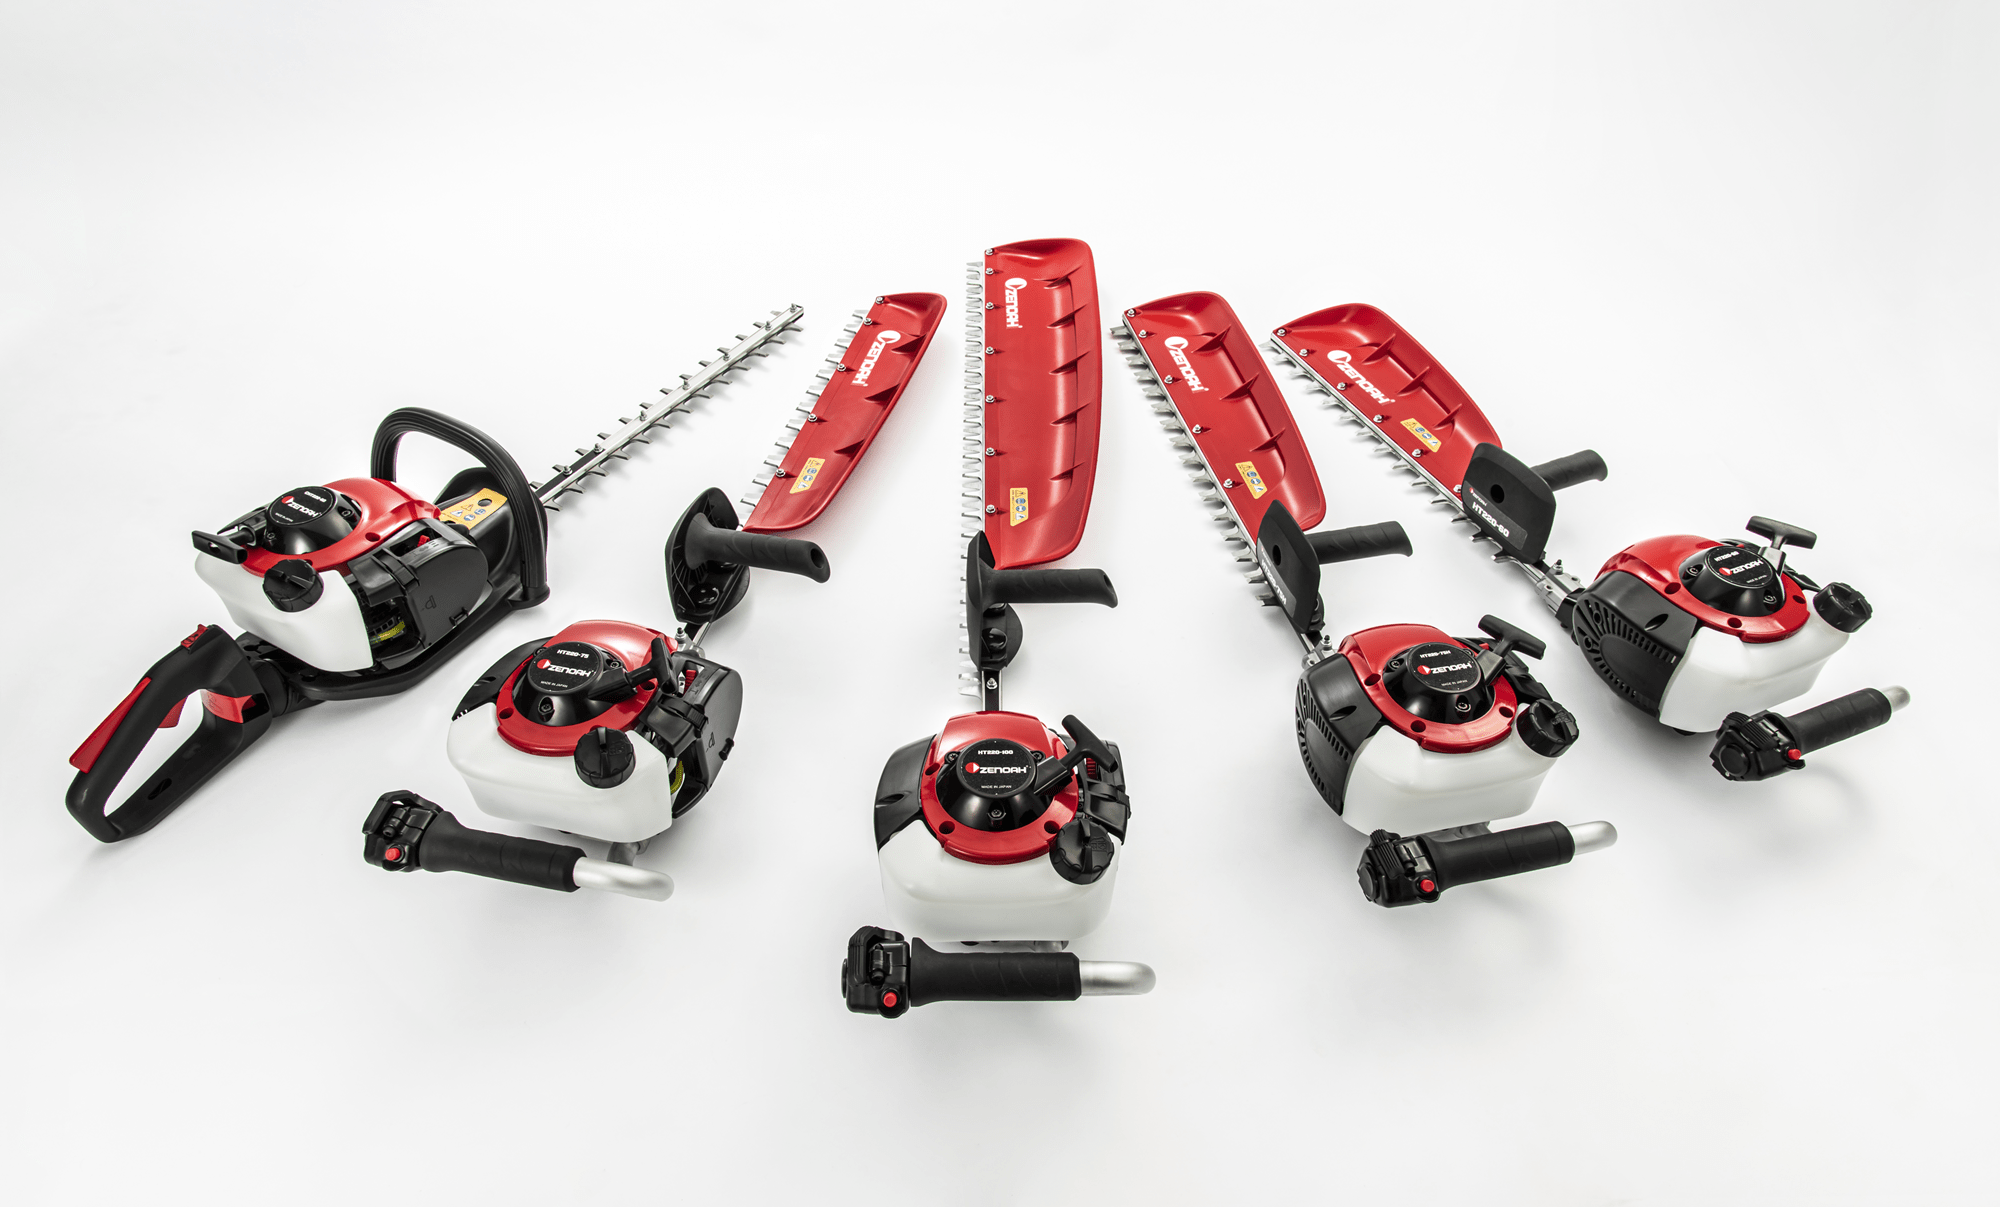 Hedge trimmer packshot